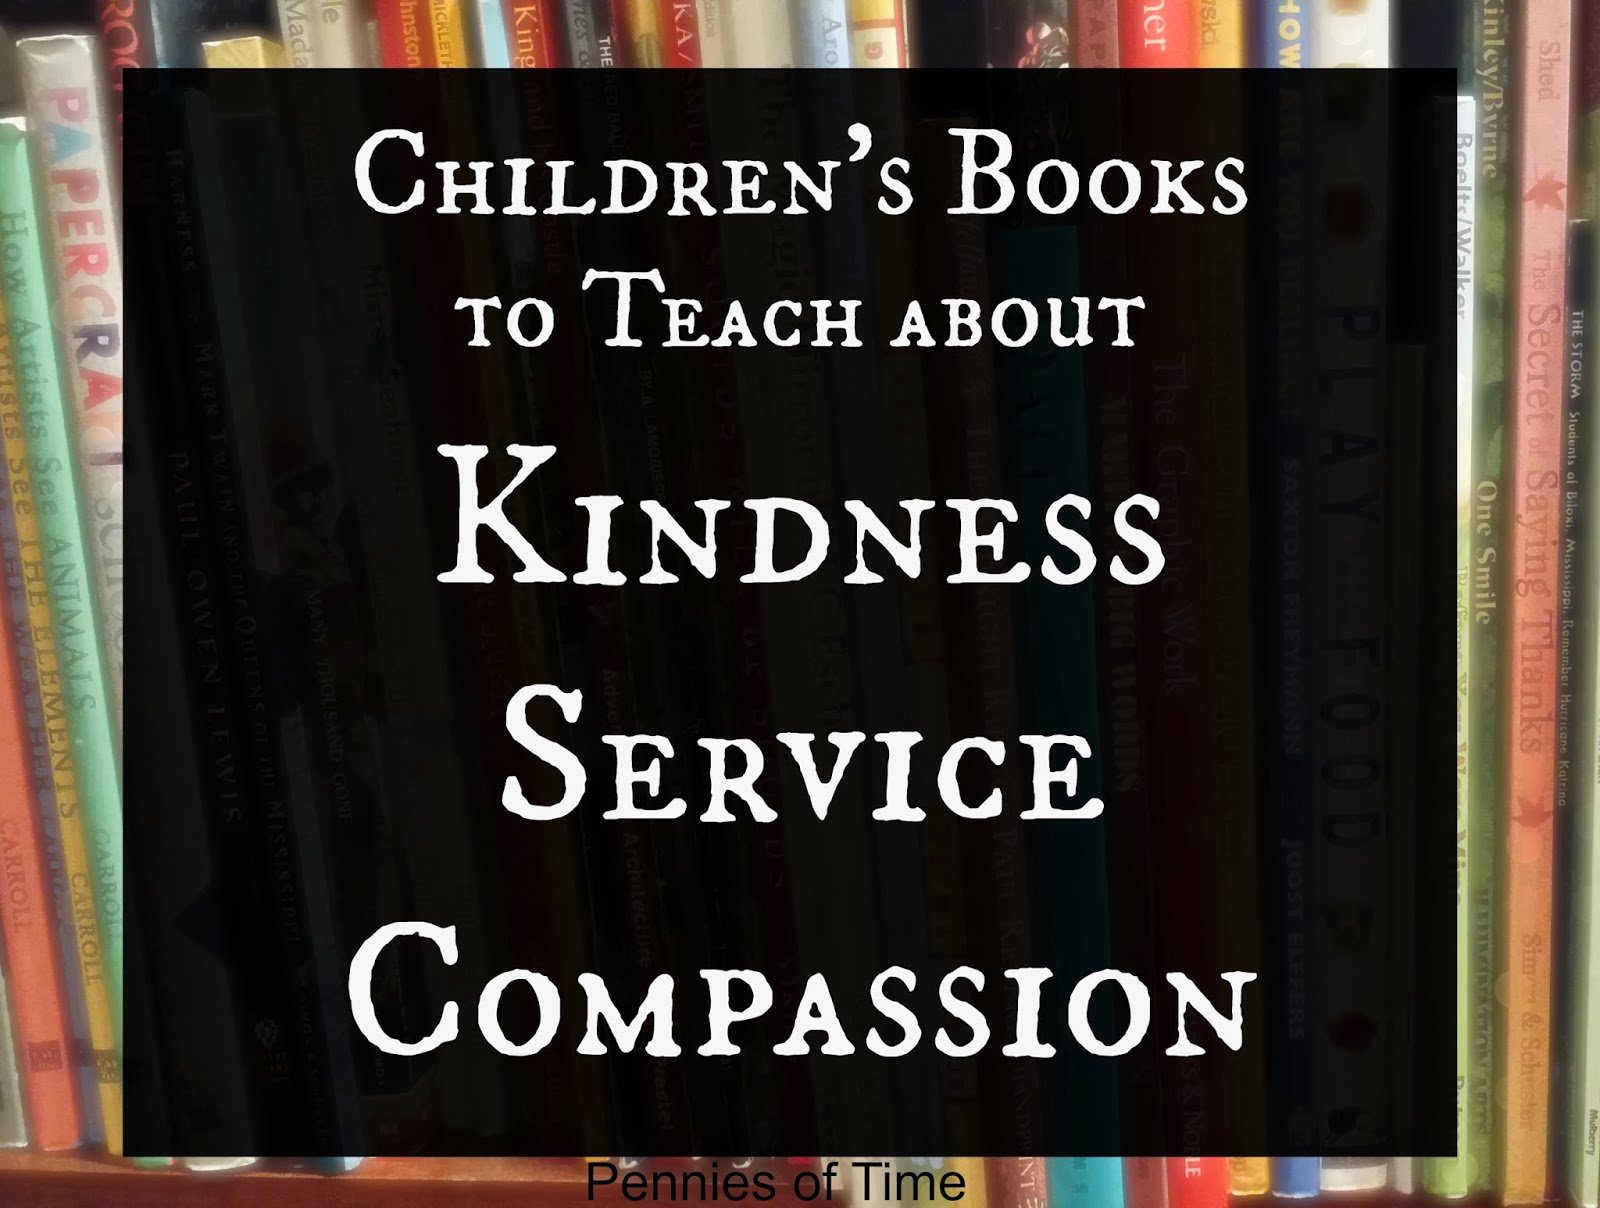 http://penniesoftime.blogspot.com/p/books-on-service-and-kindness.html